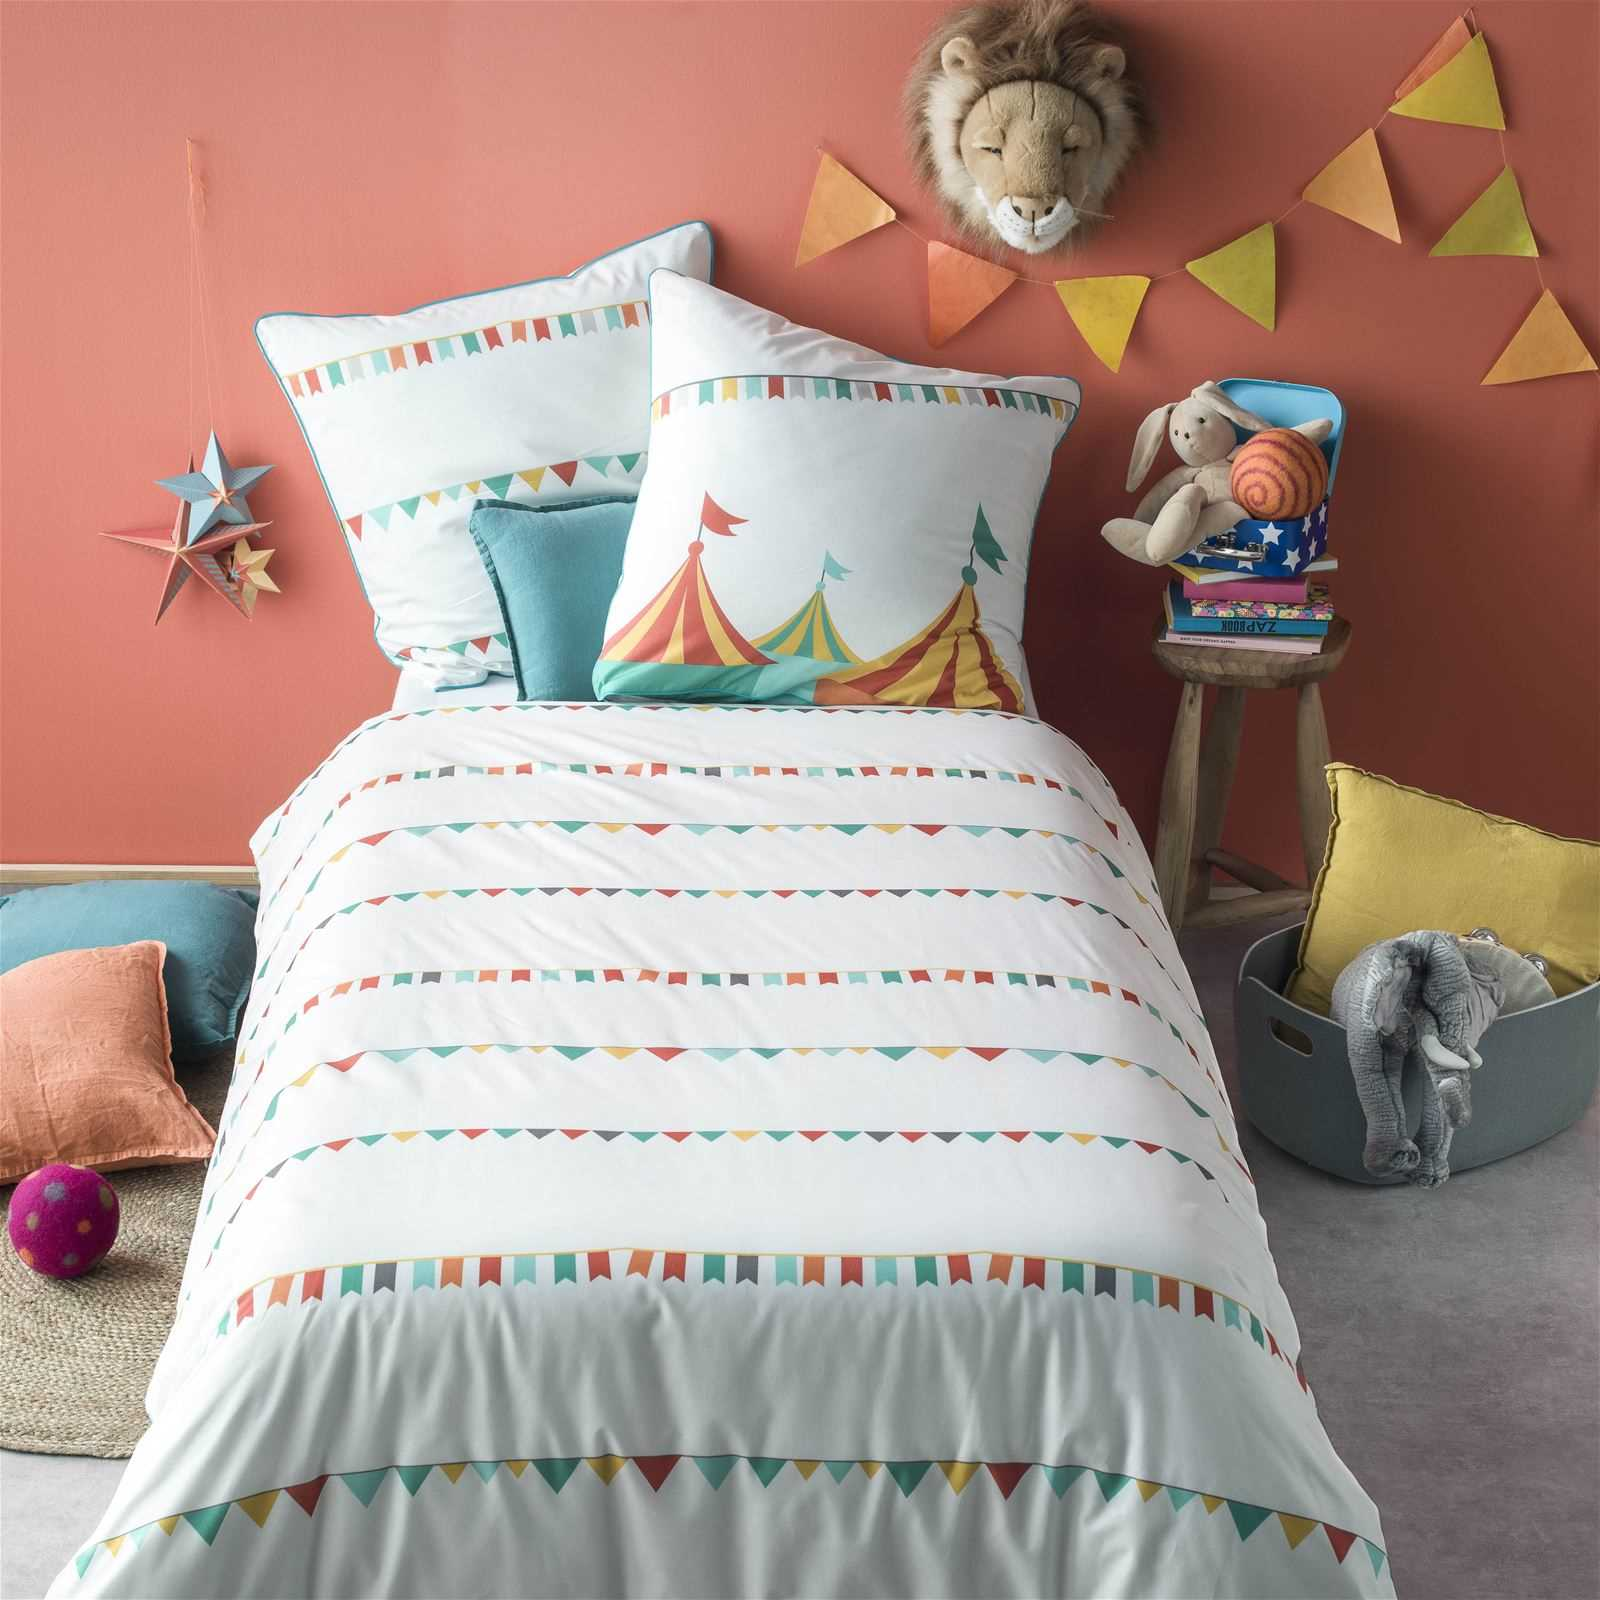 blanc cerise cirque des couleurs parure de lit enfant multicolore brandalley. Black Bedroom Furniture Sets. Home Design Ideas